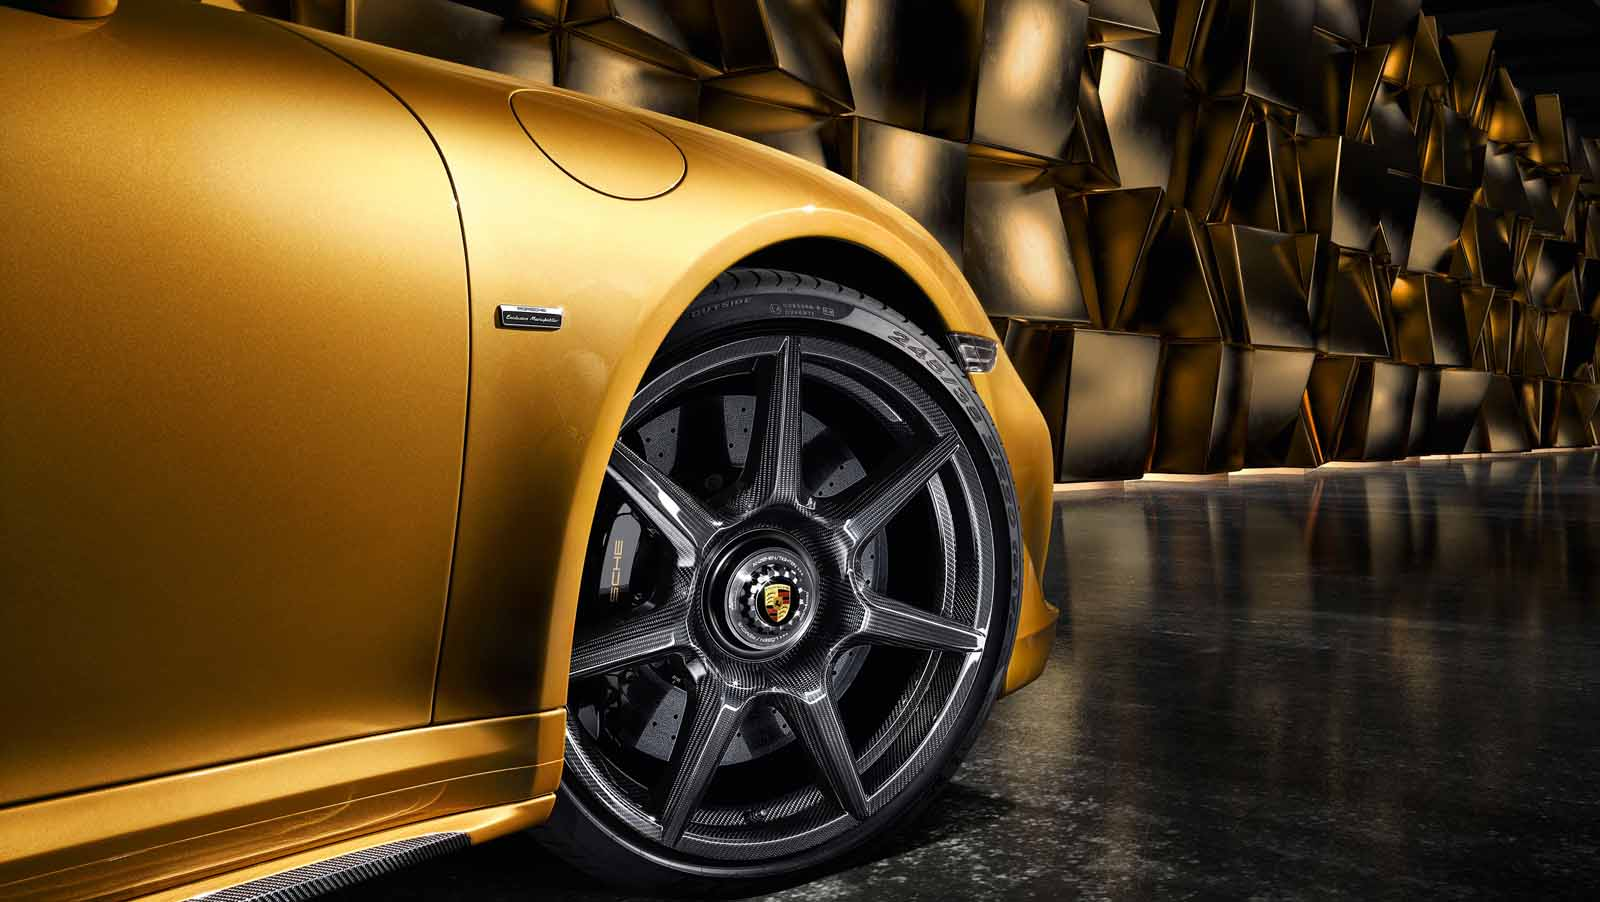 These Carbon Fiber Porsche Wheels Cost $18K